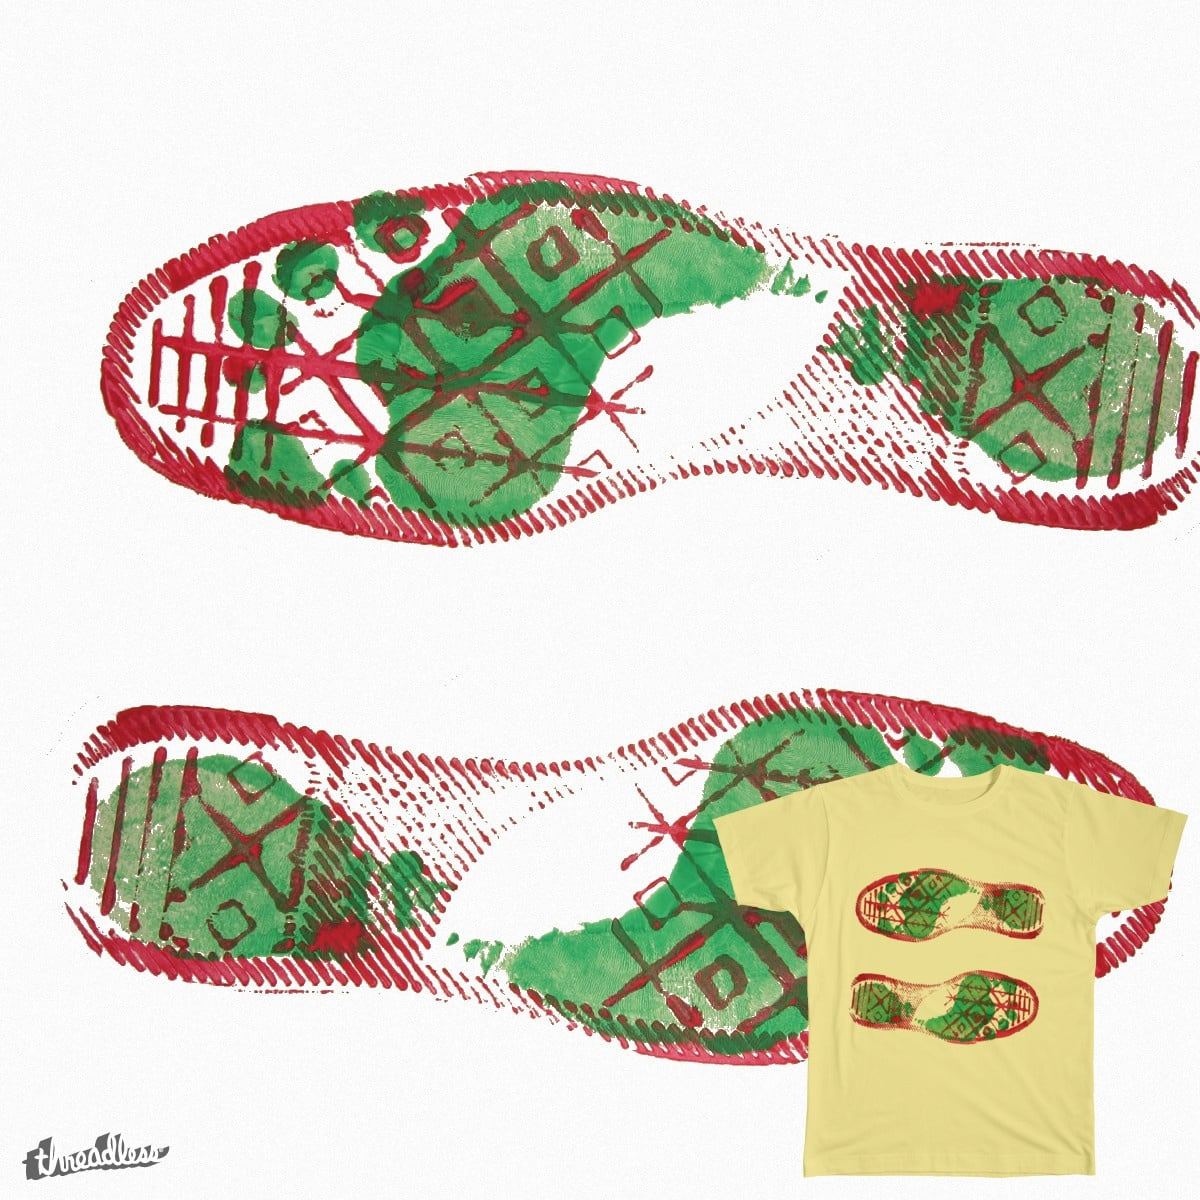 Foot-Shoe-Prints by TheBibliothekar on Threadless